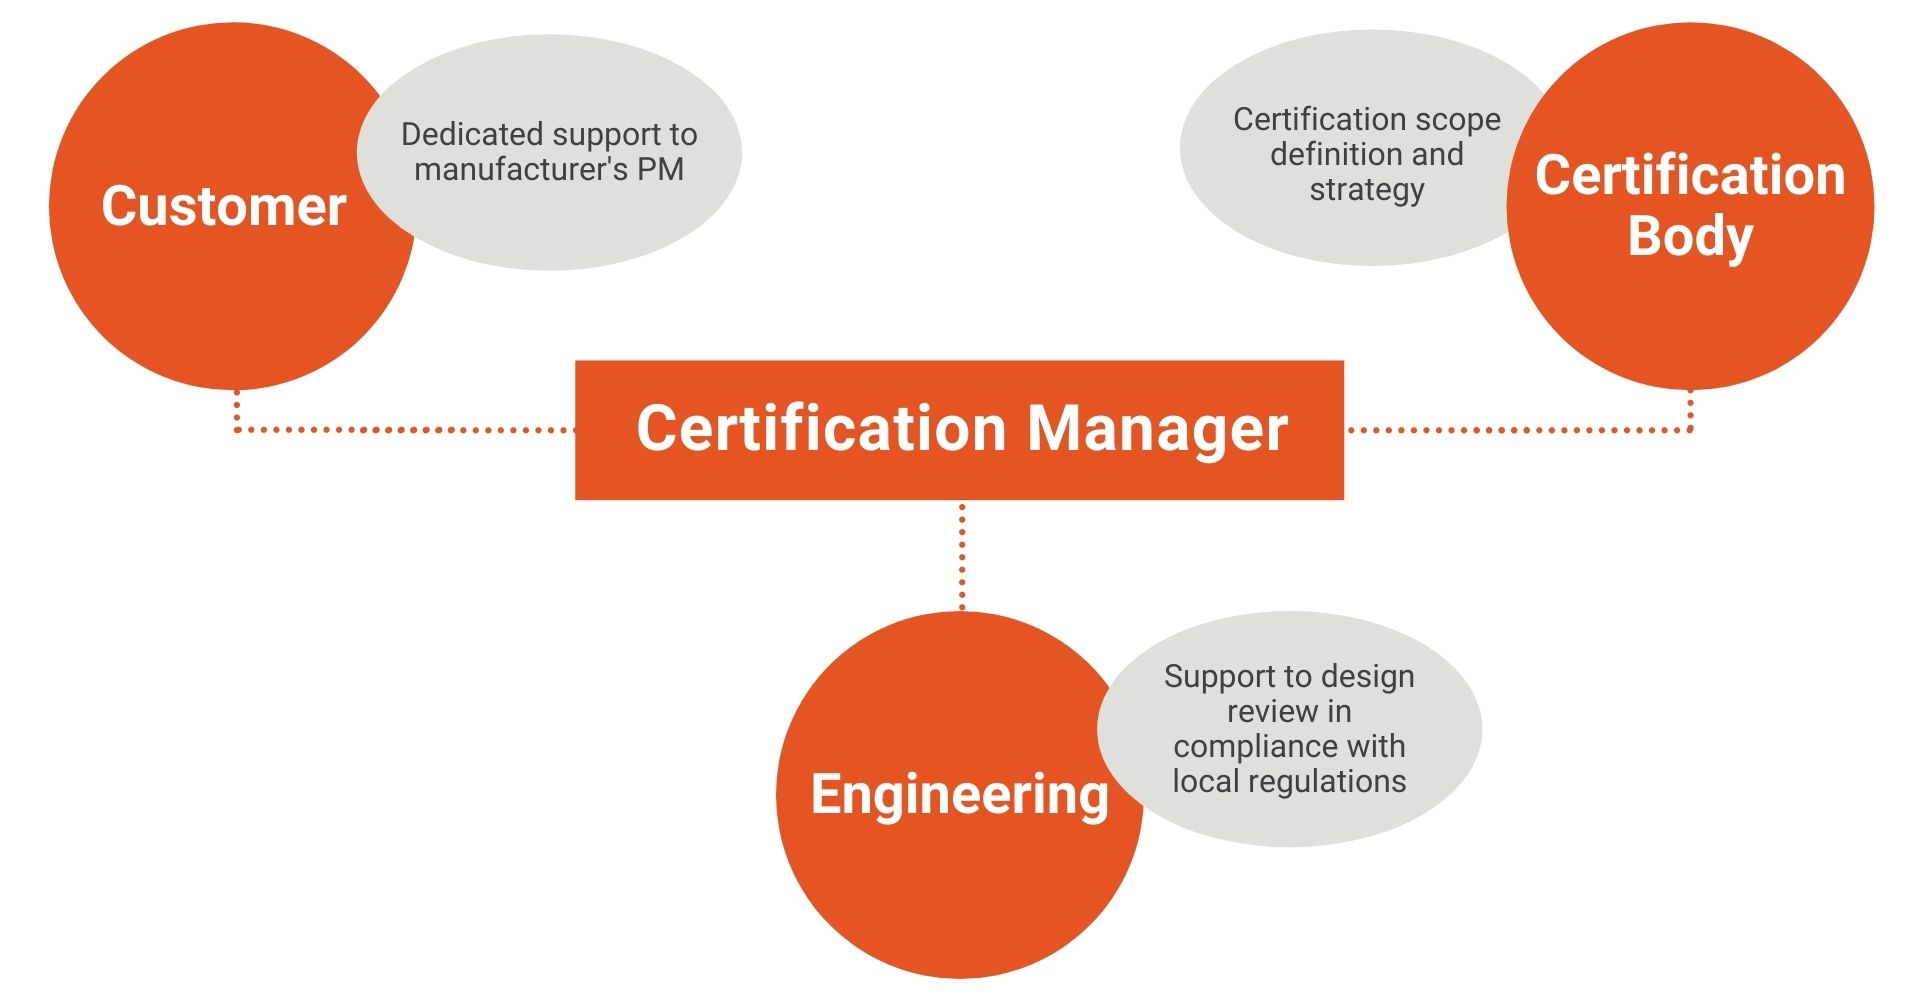 Certification Manager tasks